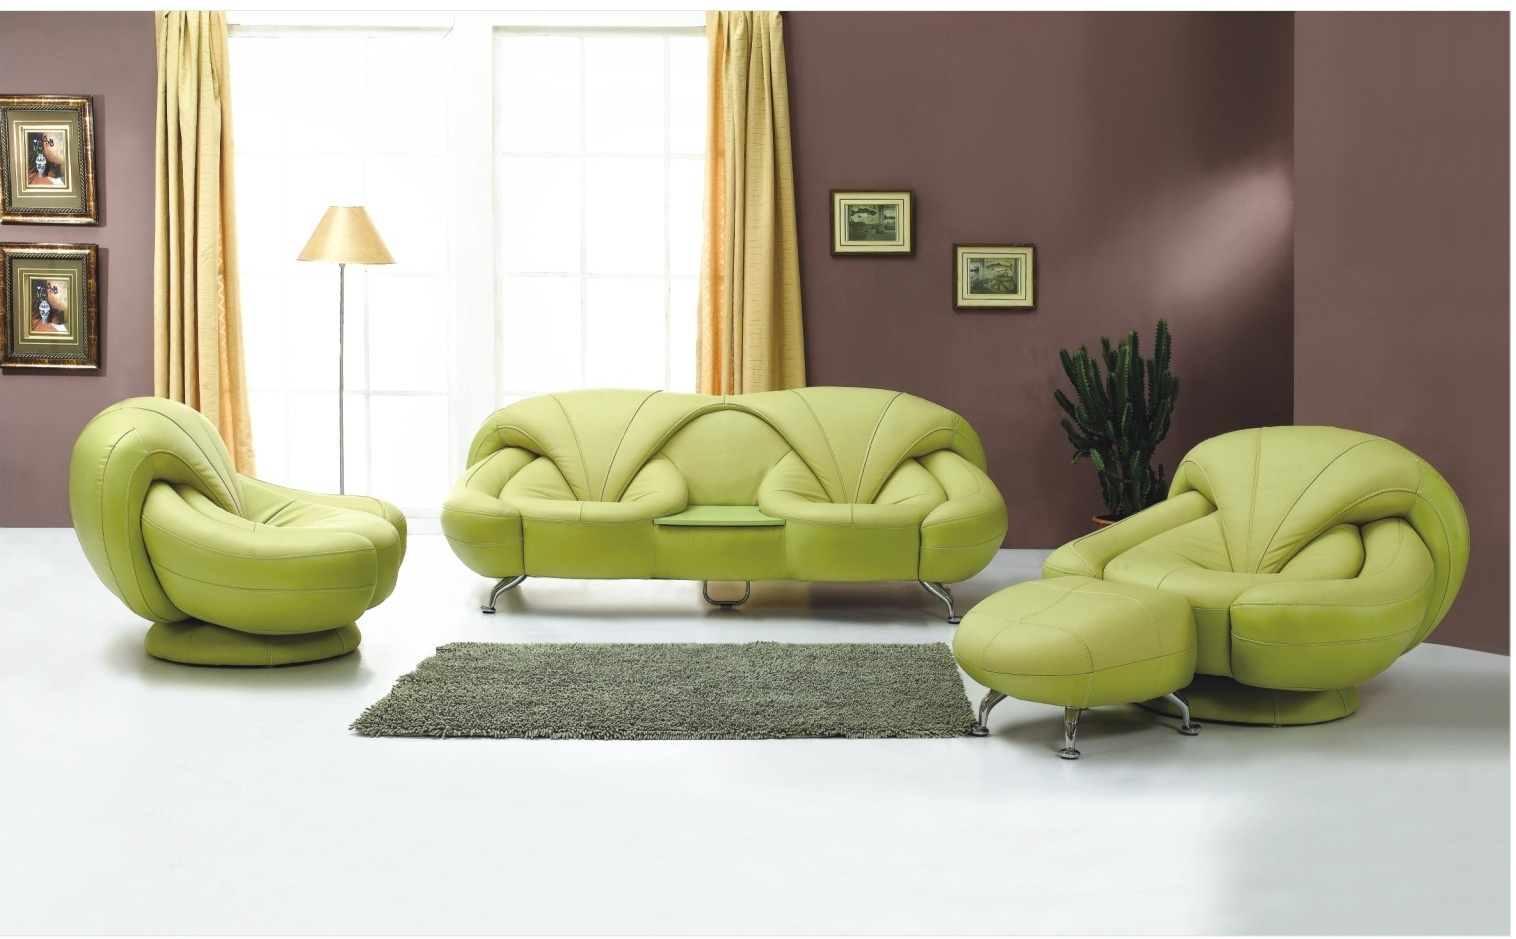 living sofa design grey images modern room furniture designs ideas an interior